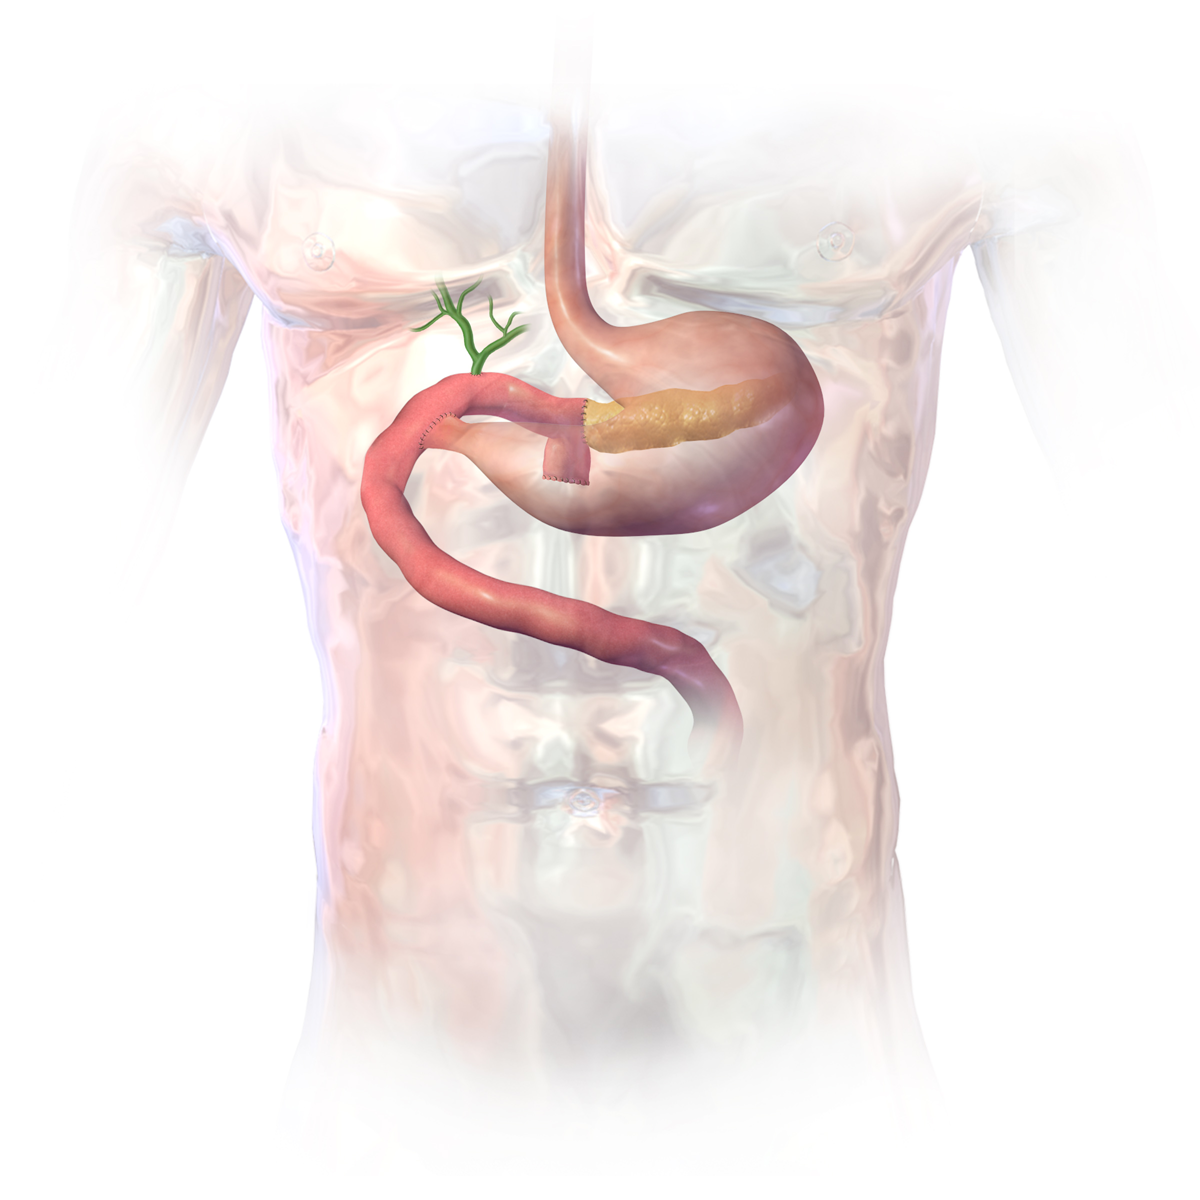 Surgical Oncology Program - Pancreatic Cysts